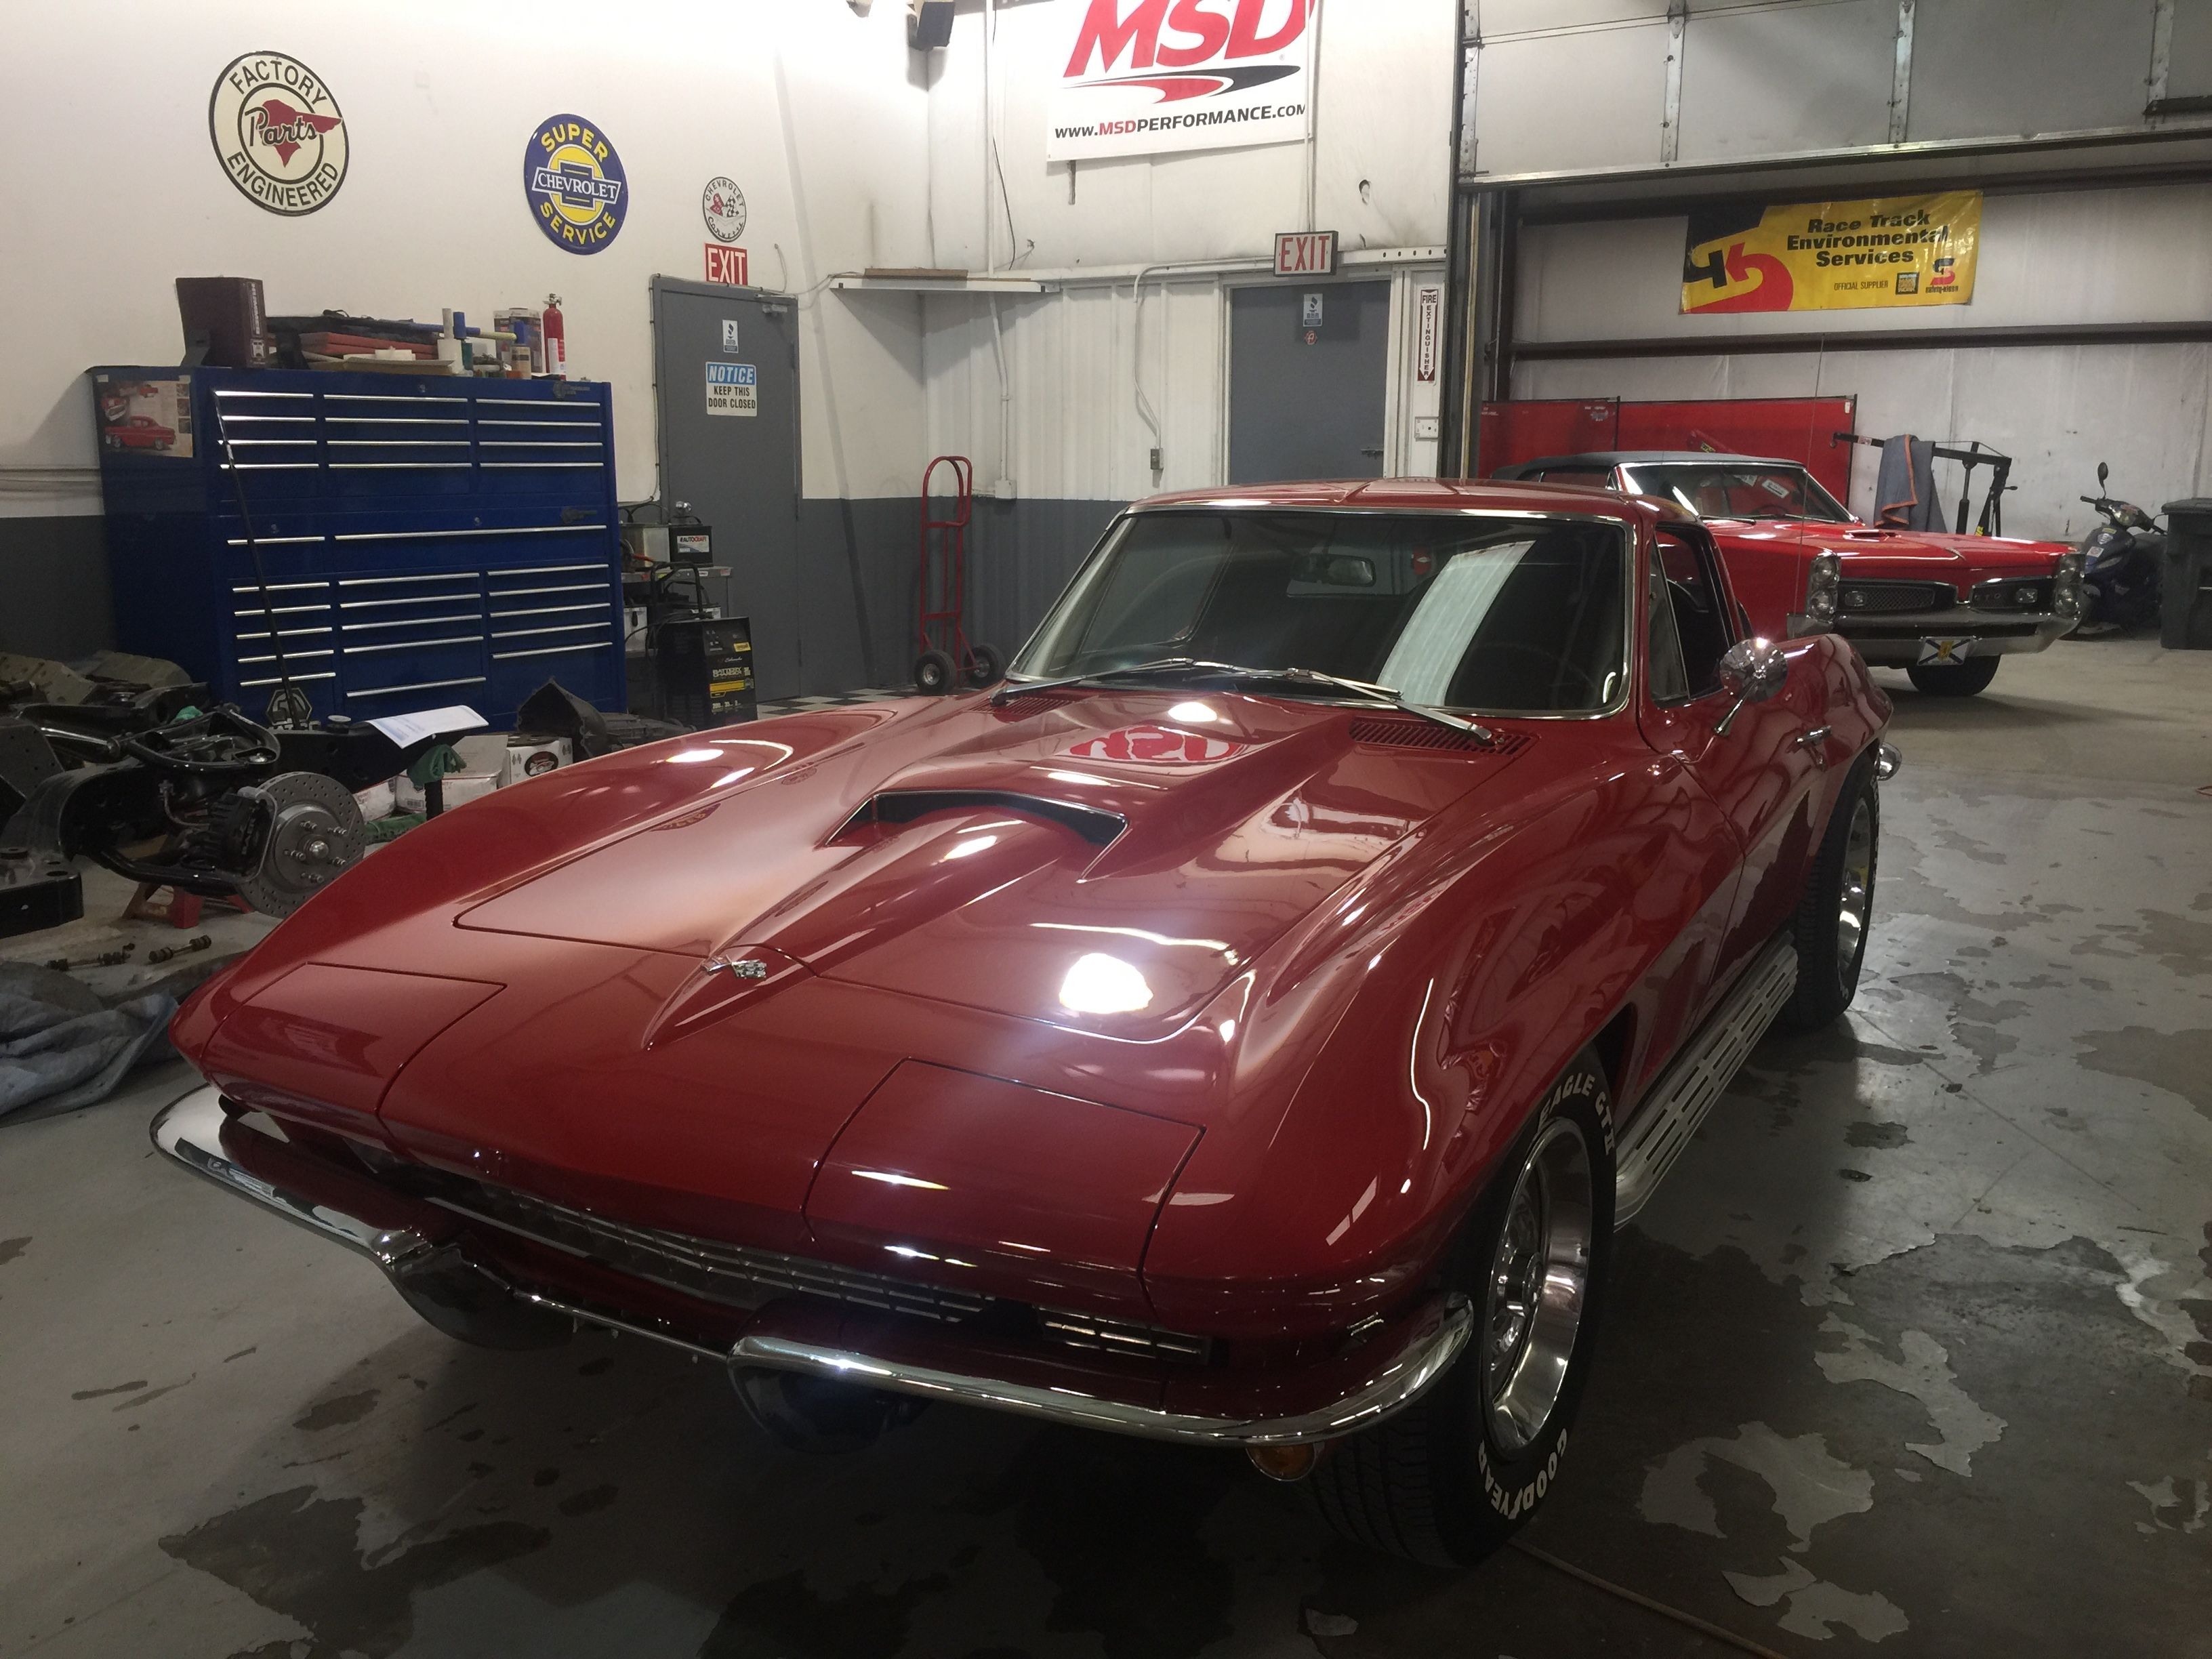 1967 Corvette Restoration And Performance By Quarter Mile Muscle